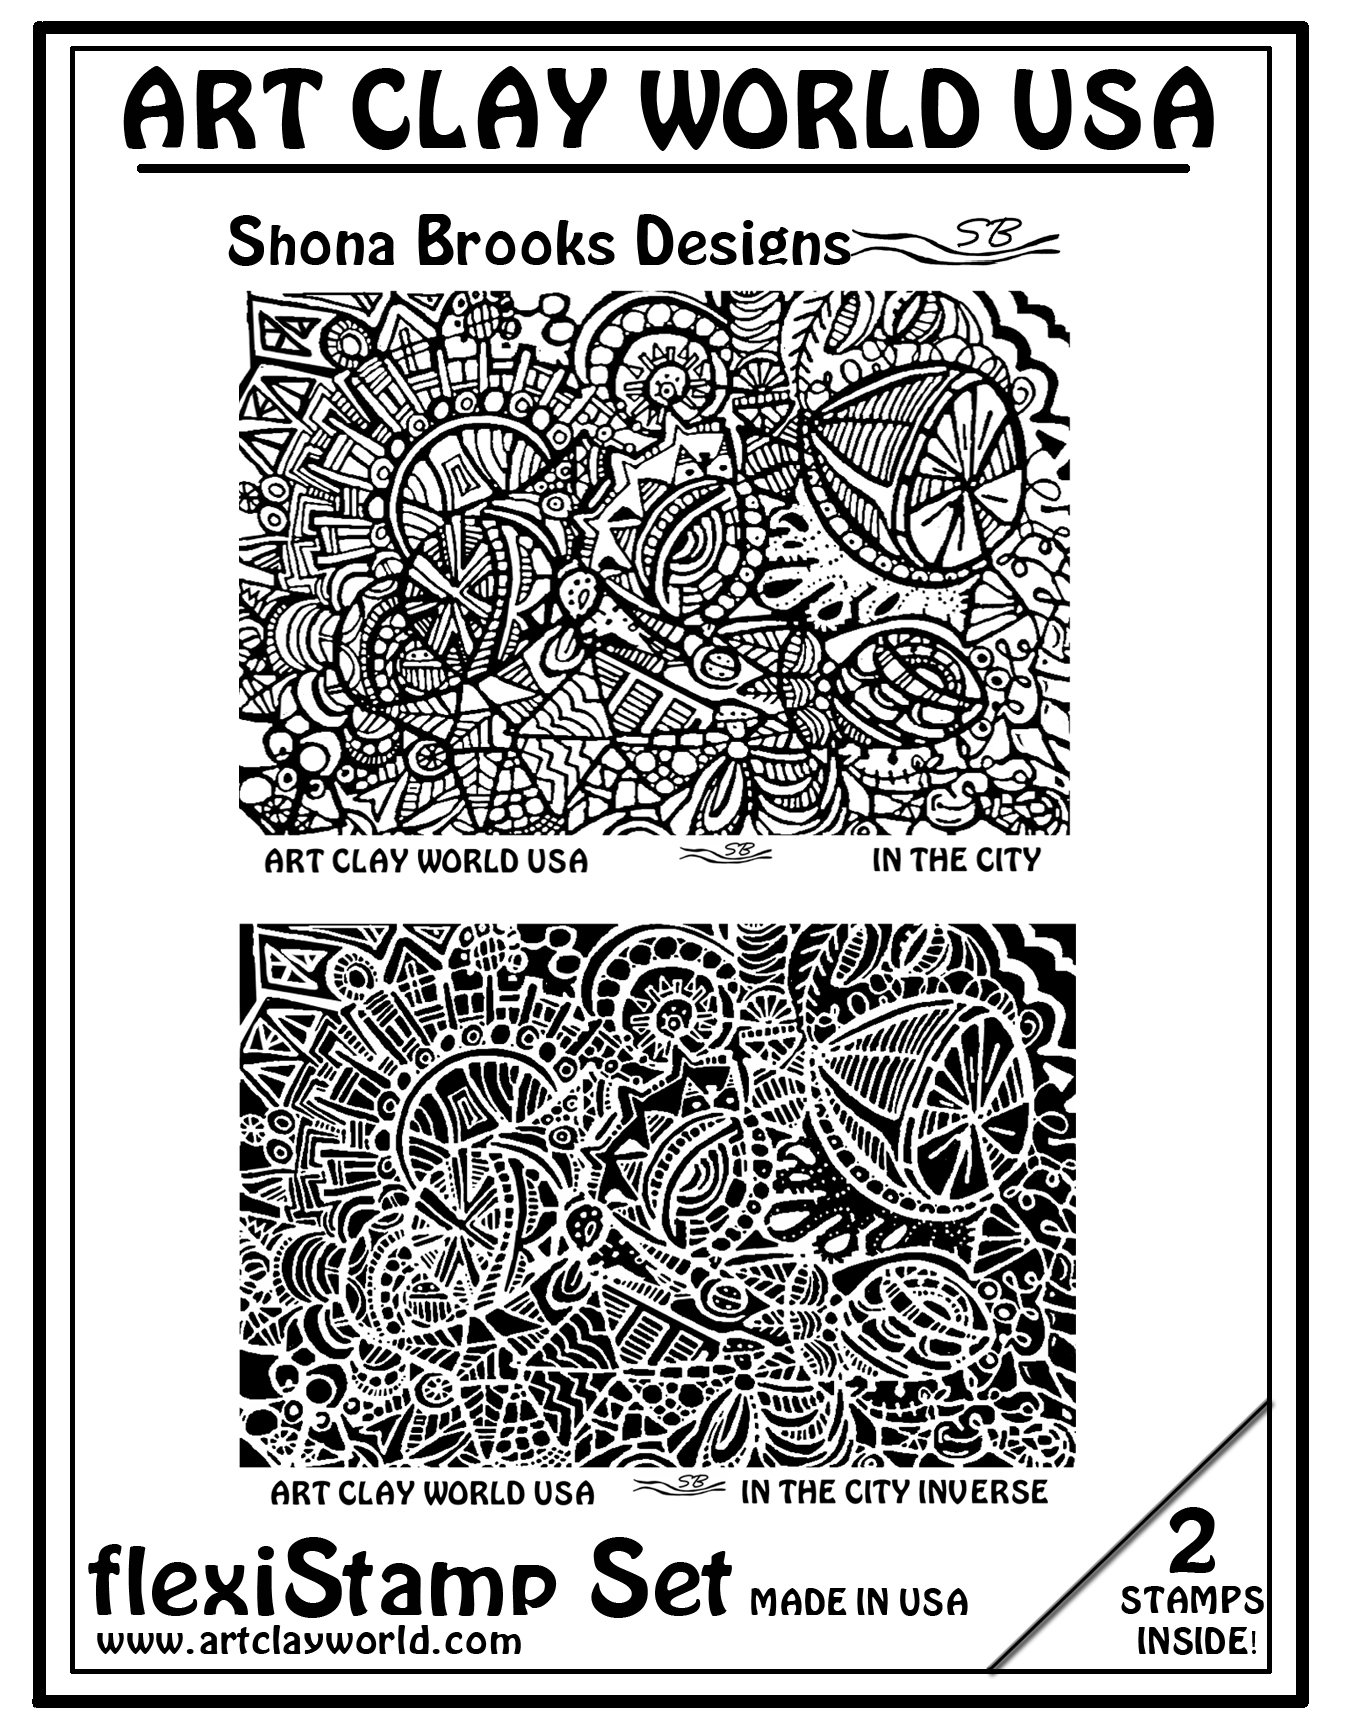 Flexistamps Texture Sheet Set Shona Brooks In The City Set (Including In The City and In The City Inverse)- 2 Pc.